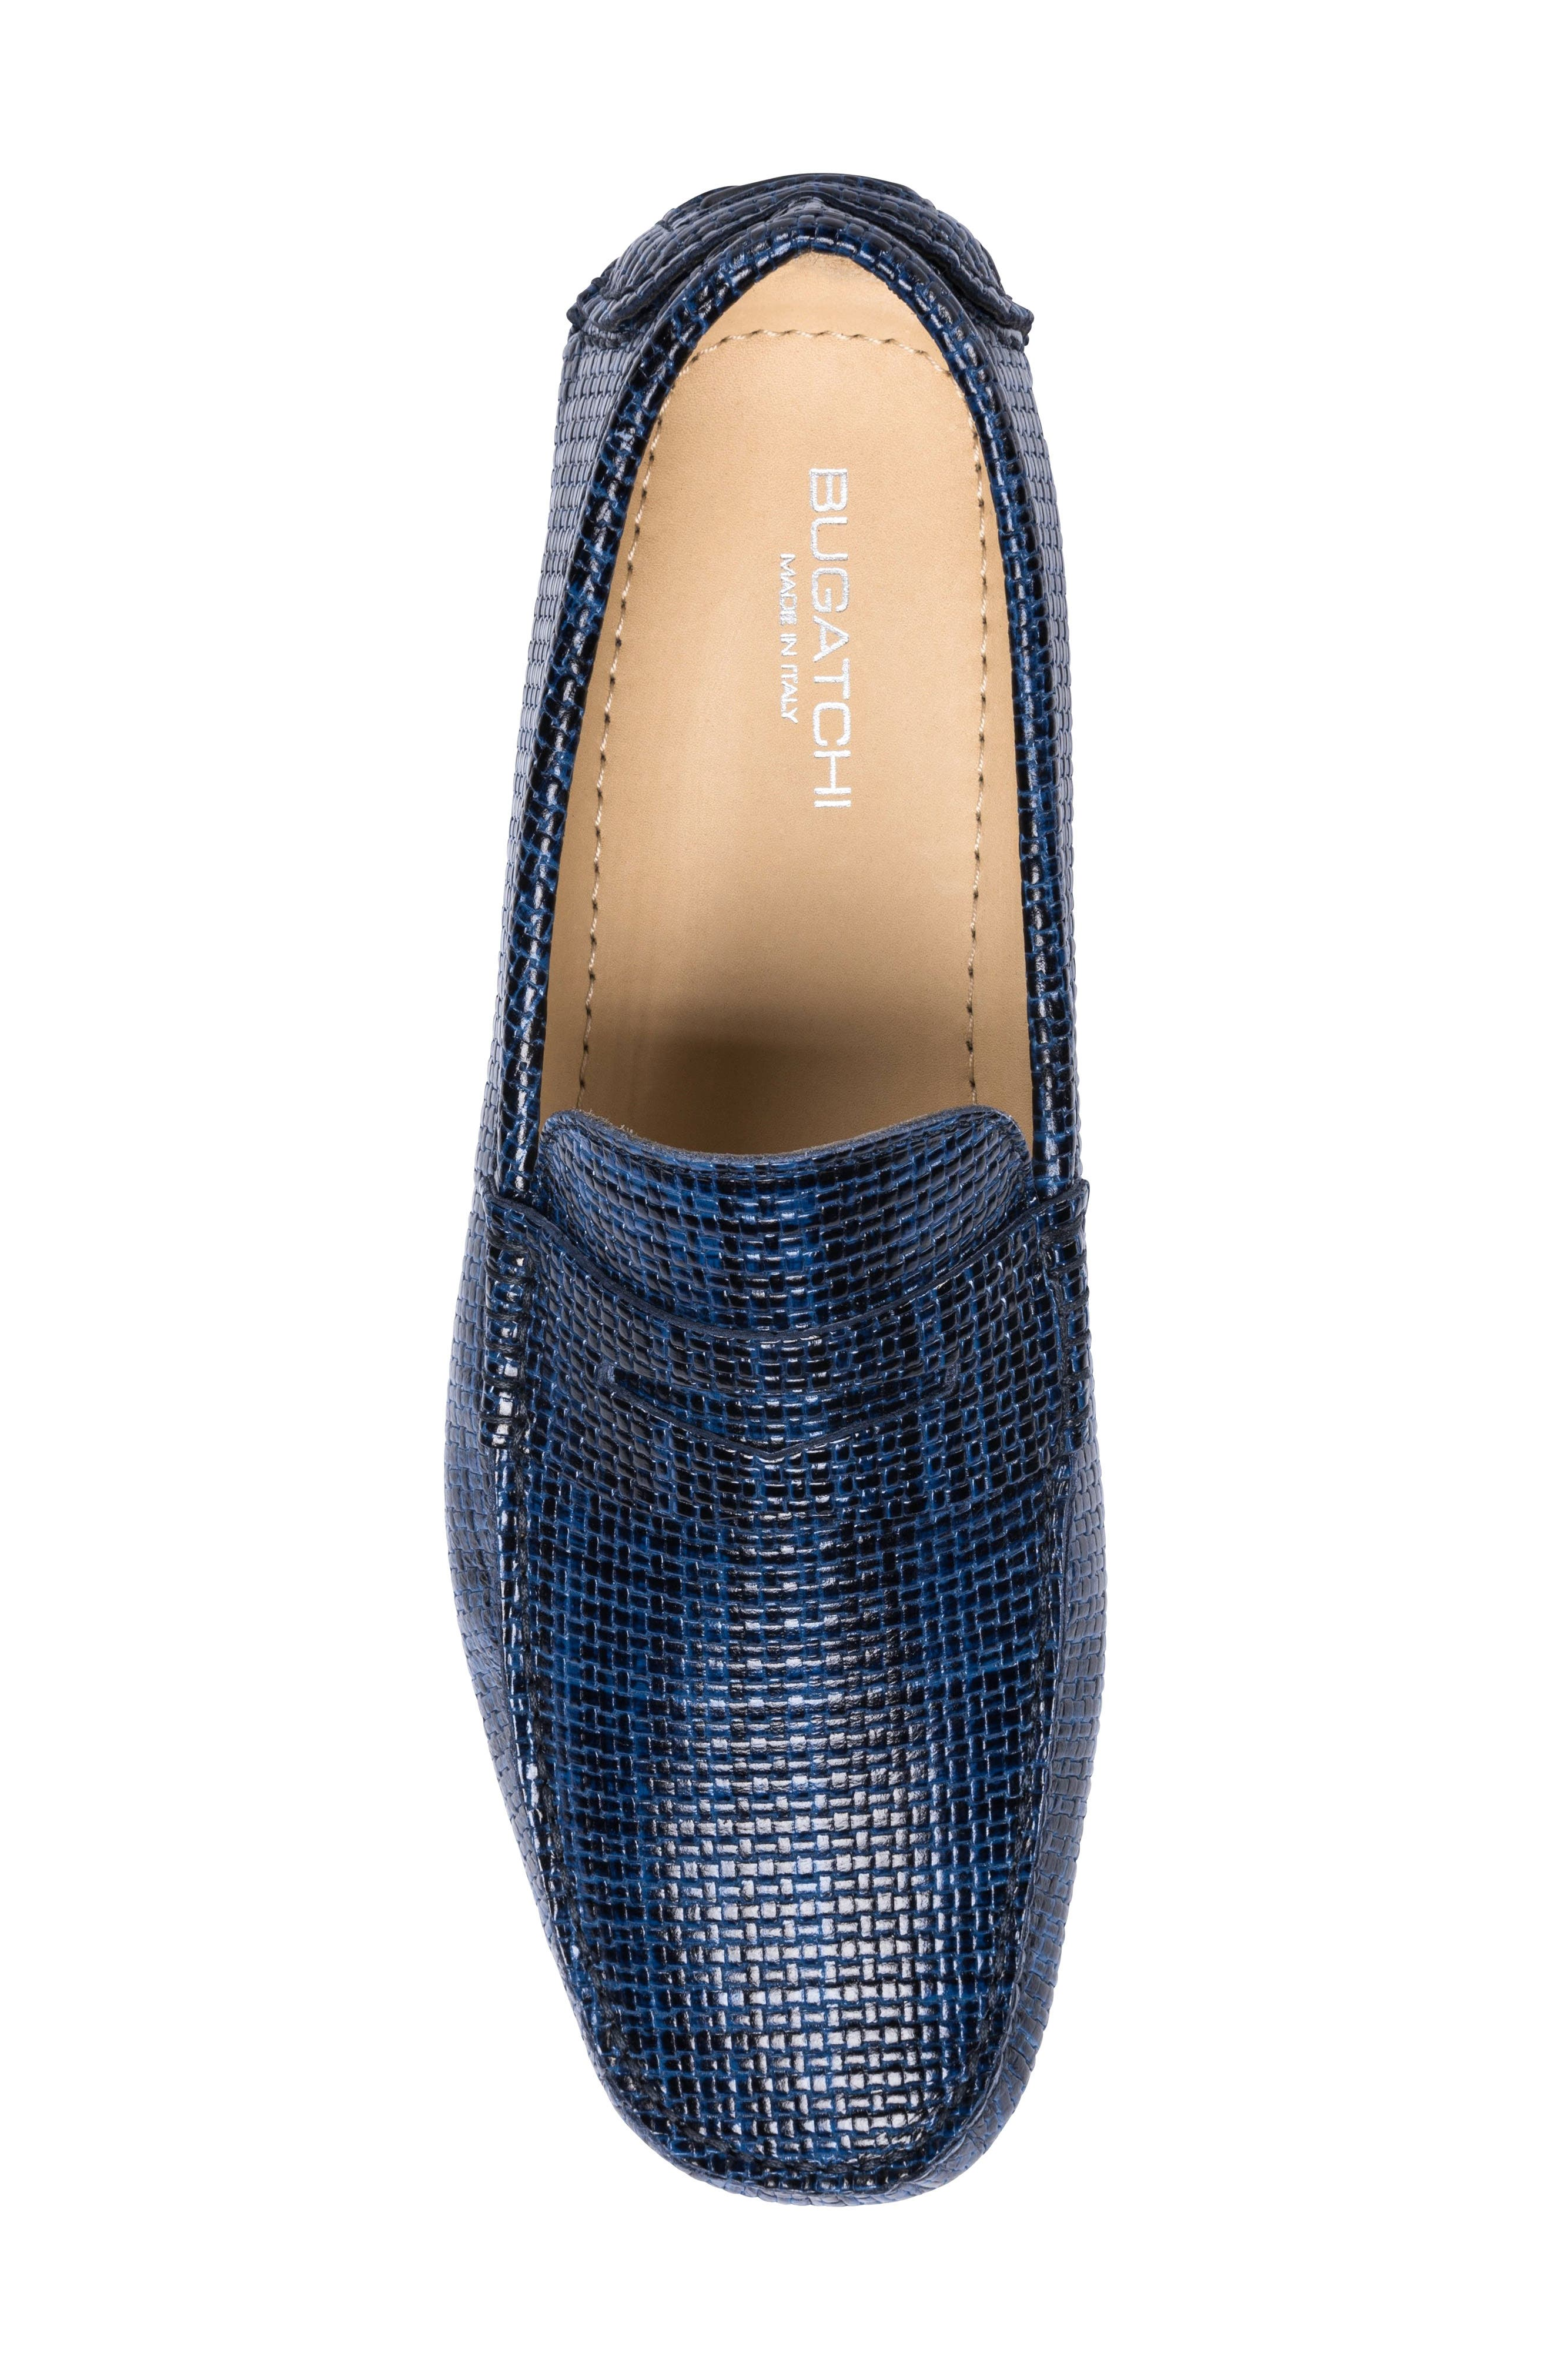 Montalcino Driving Penny Loafer,                             Alternate thumbnail 5, color,                             Blue Leather